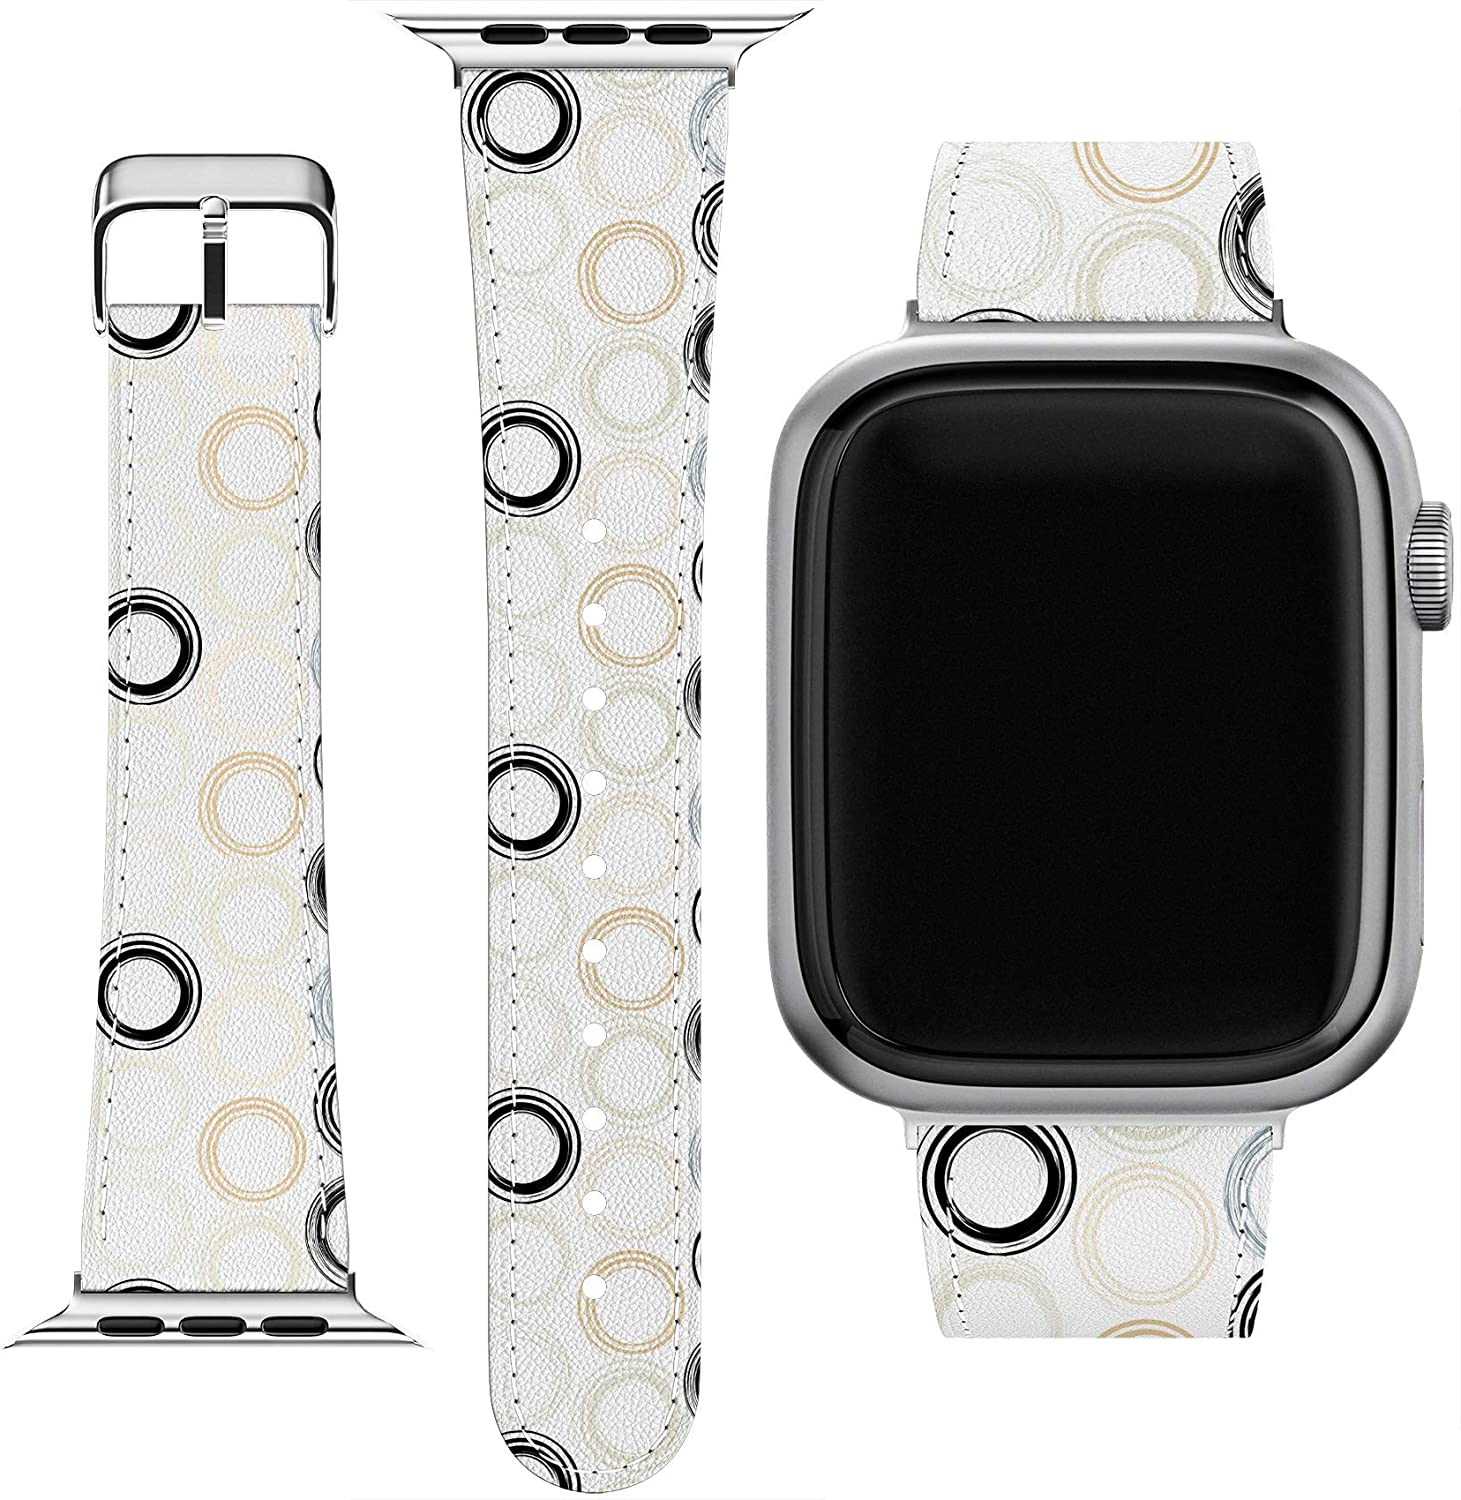 Cavka Wrist Band Replacement for Apple Watch Series 1/2/3/4/5/6/SE Elegant Arrow Replacement Strap 38-40-42-44 mm Geometric Pattern Slim fit Simple Circles PU Leather Design Printed Bracelet Awesome